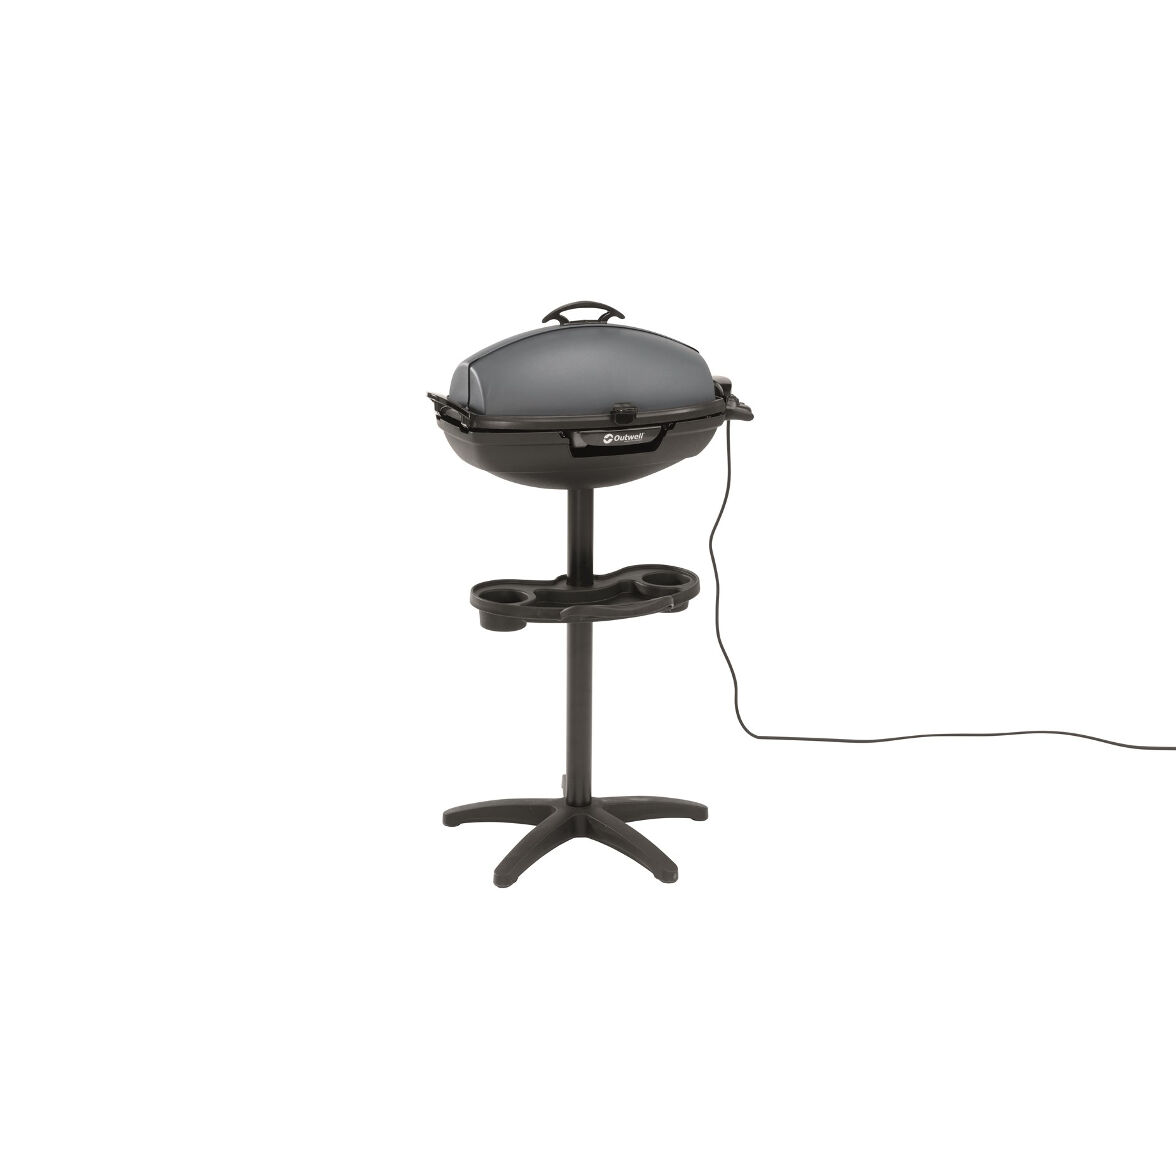 Outwell Darby Electric grill   GetCamping